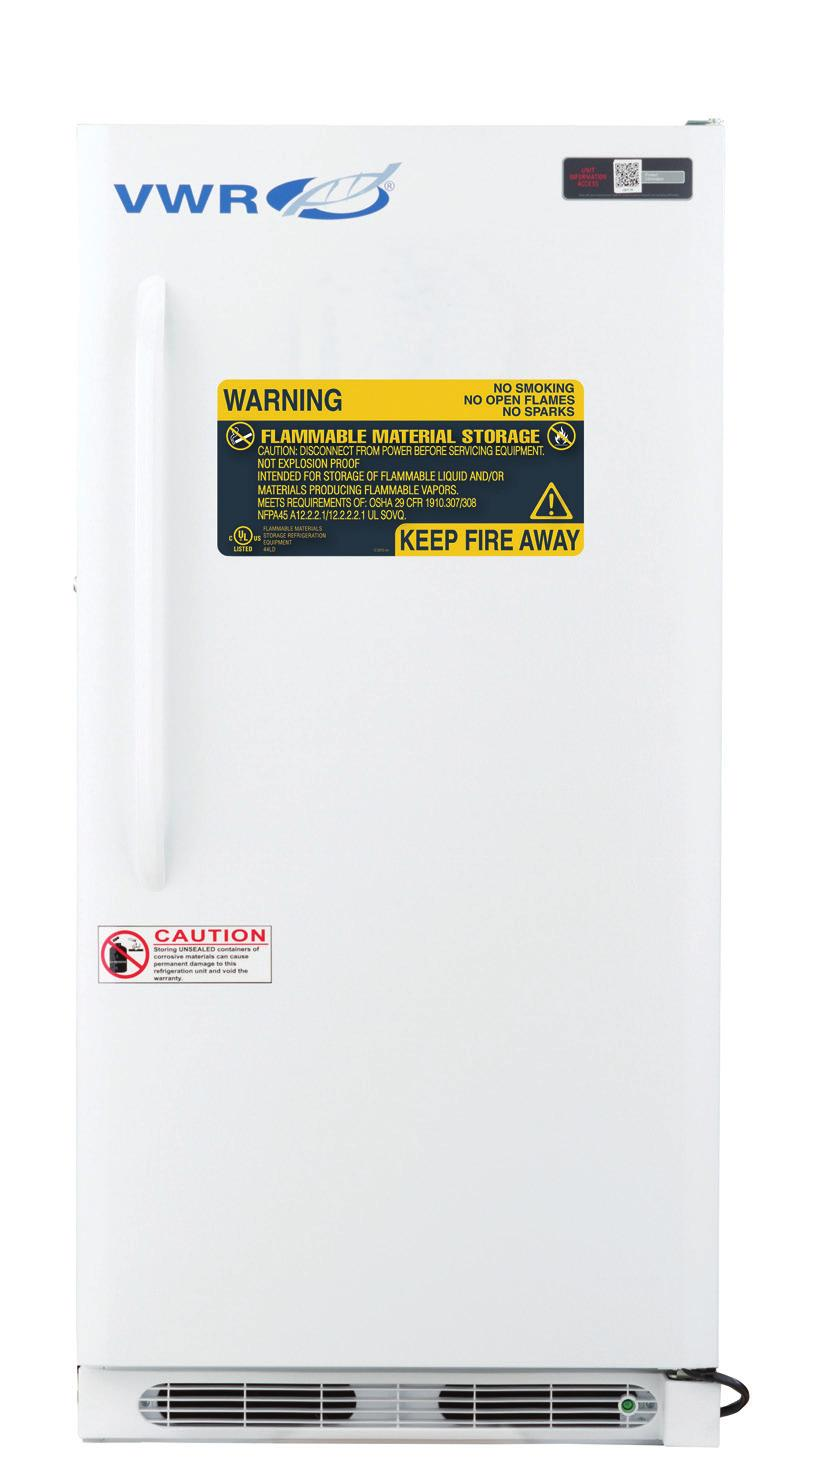 VWR STANDARD SERIES FLAMMABLE REFRIGERATORS & FREEZERS 1 to 10 C [Refrigerator] -15 to -25 C [Freezer] No internal electrical components inside of unit Electrical compressor components sealed in